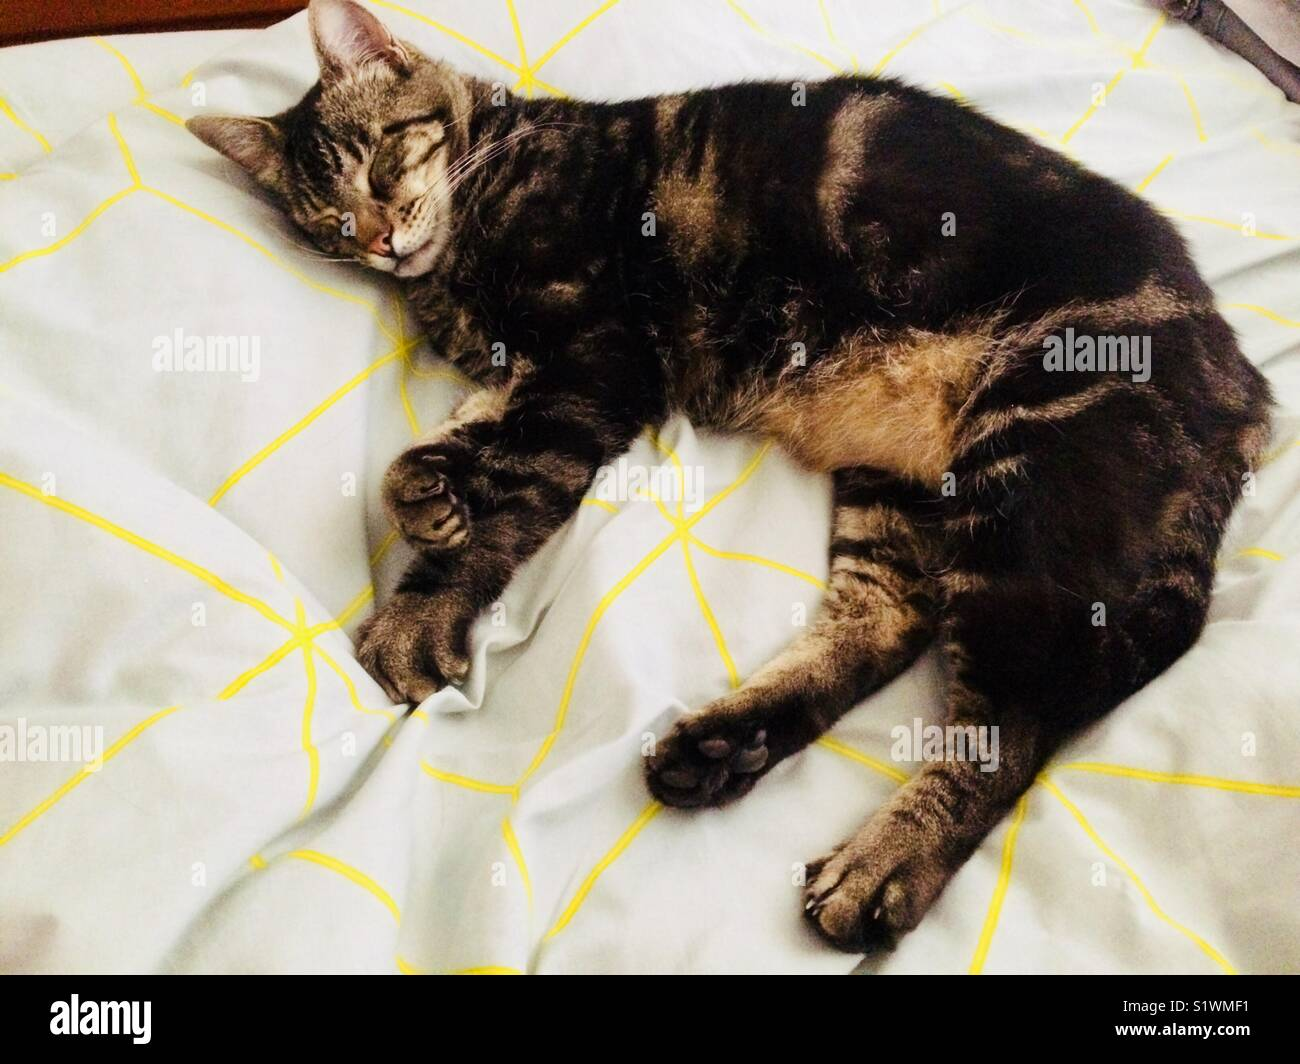 Cat laying on bed edited. - Stock Image